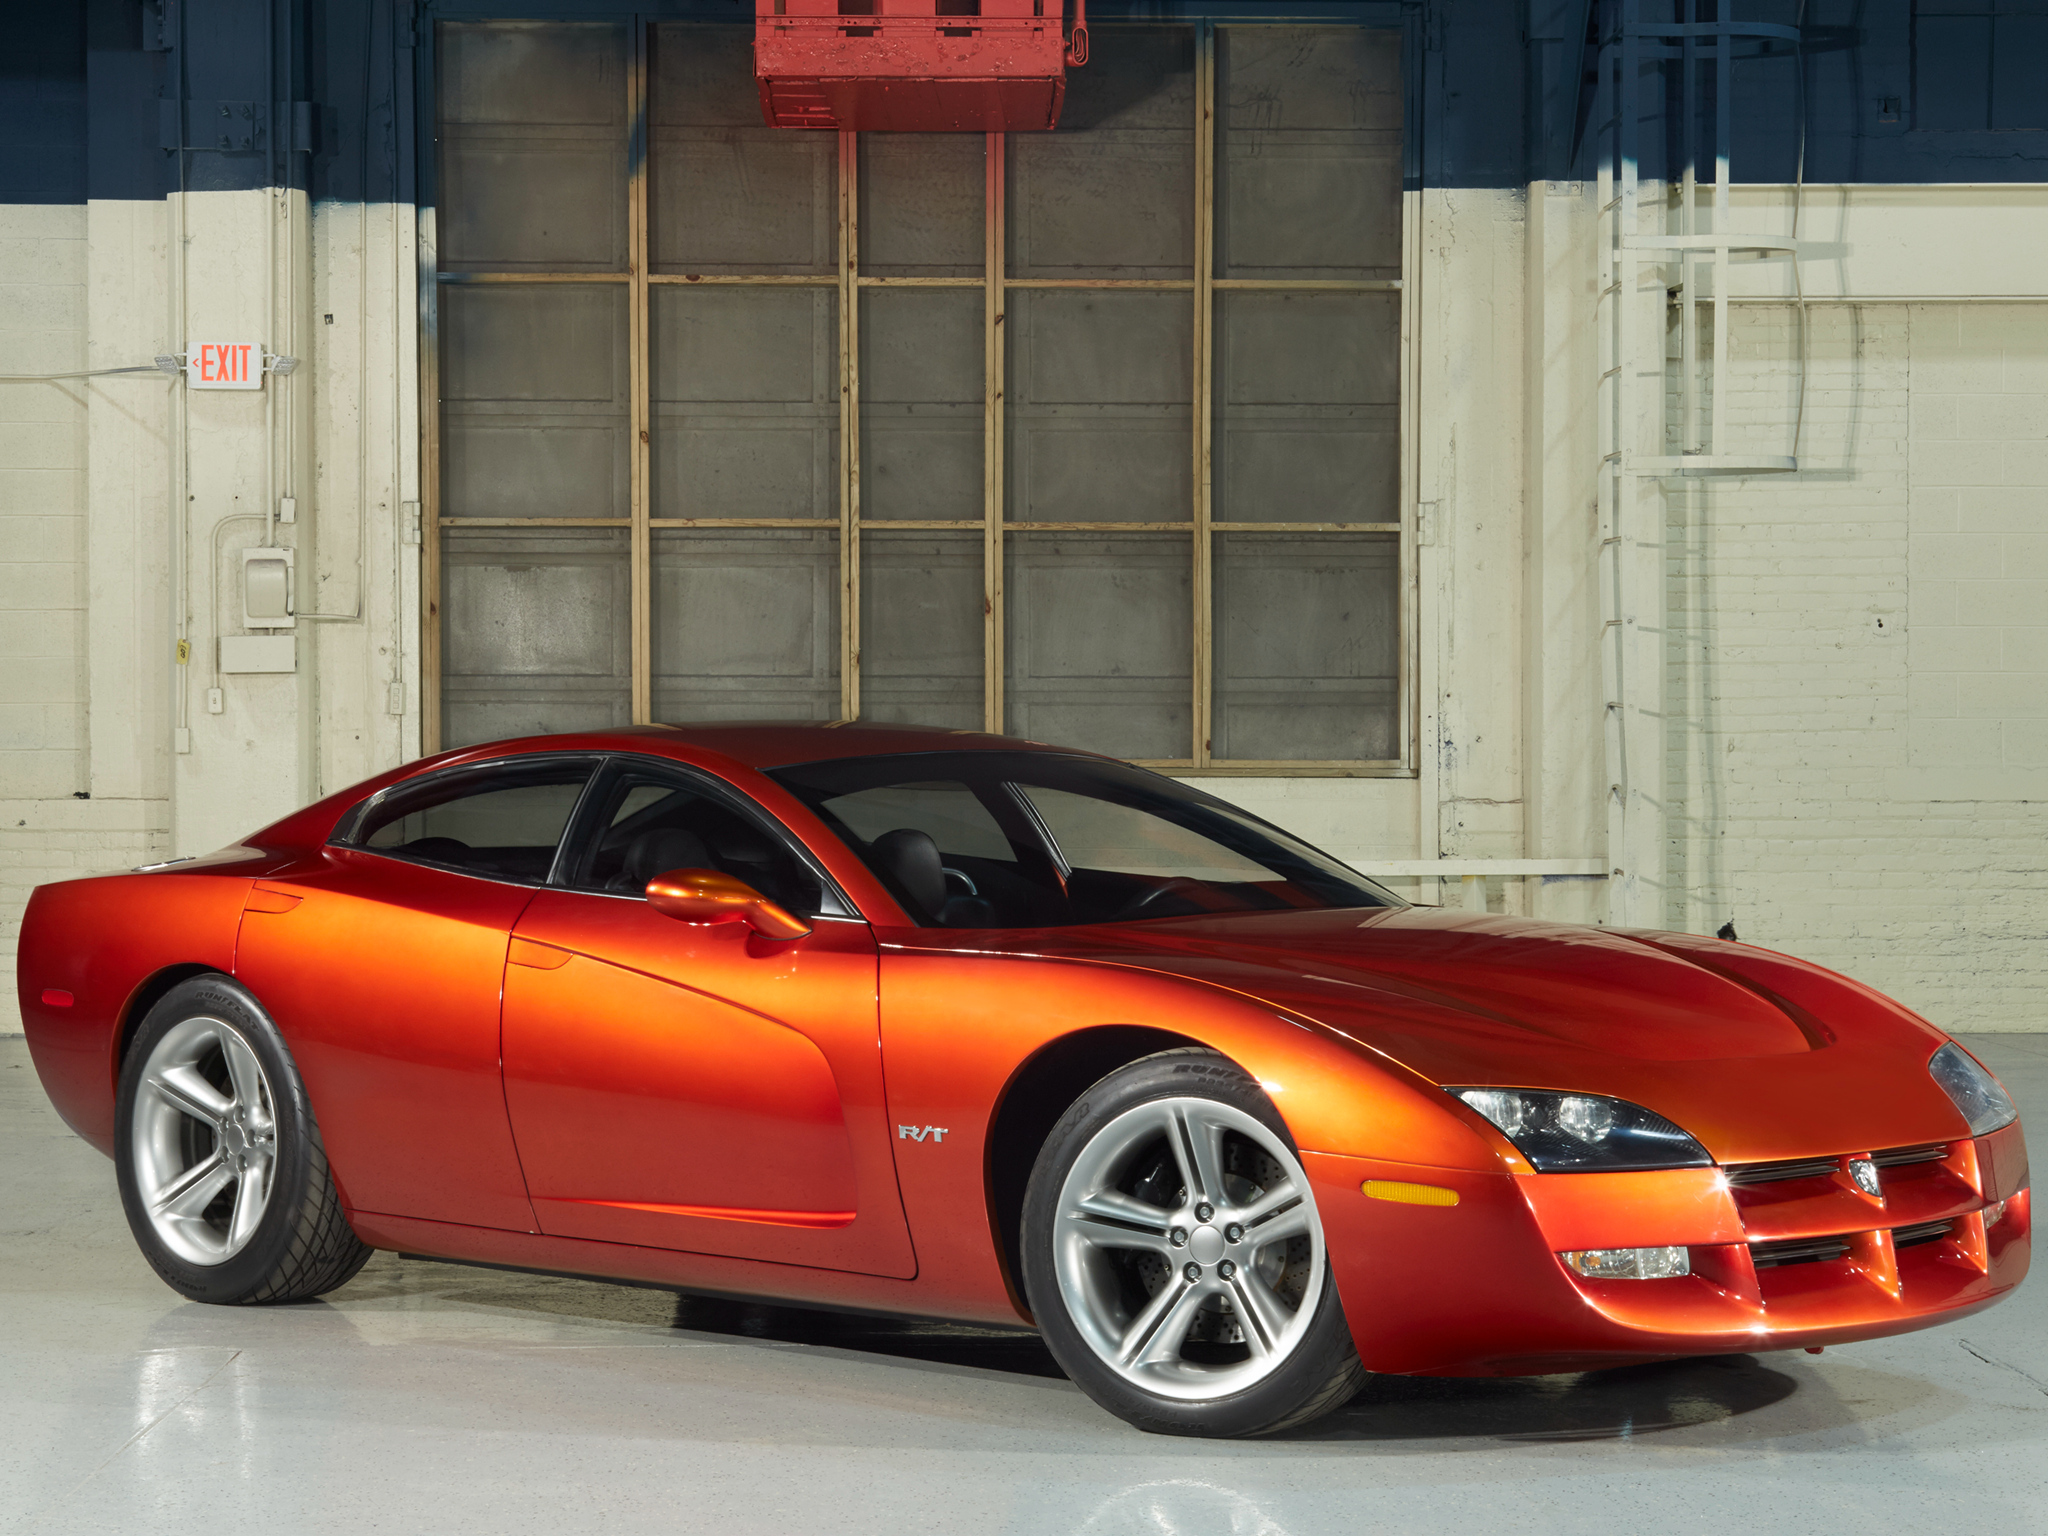 1999 Dodge Charger RT Concept Vehicle photo - 2